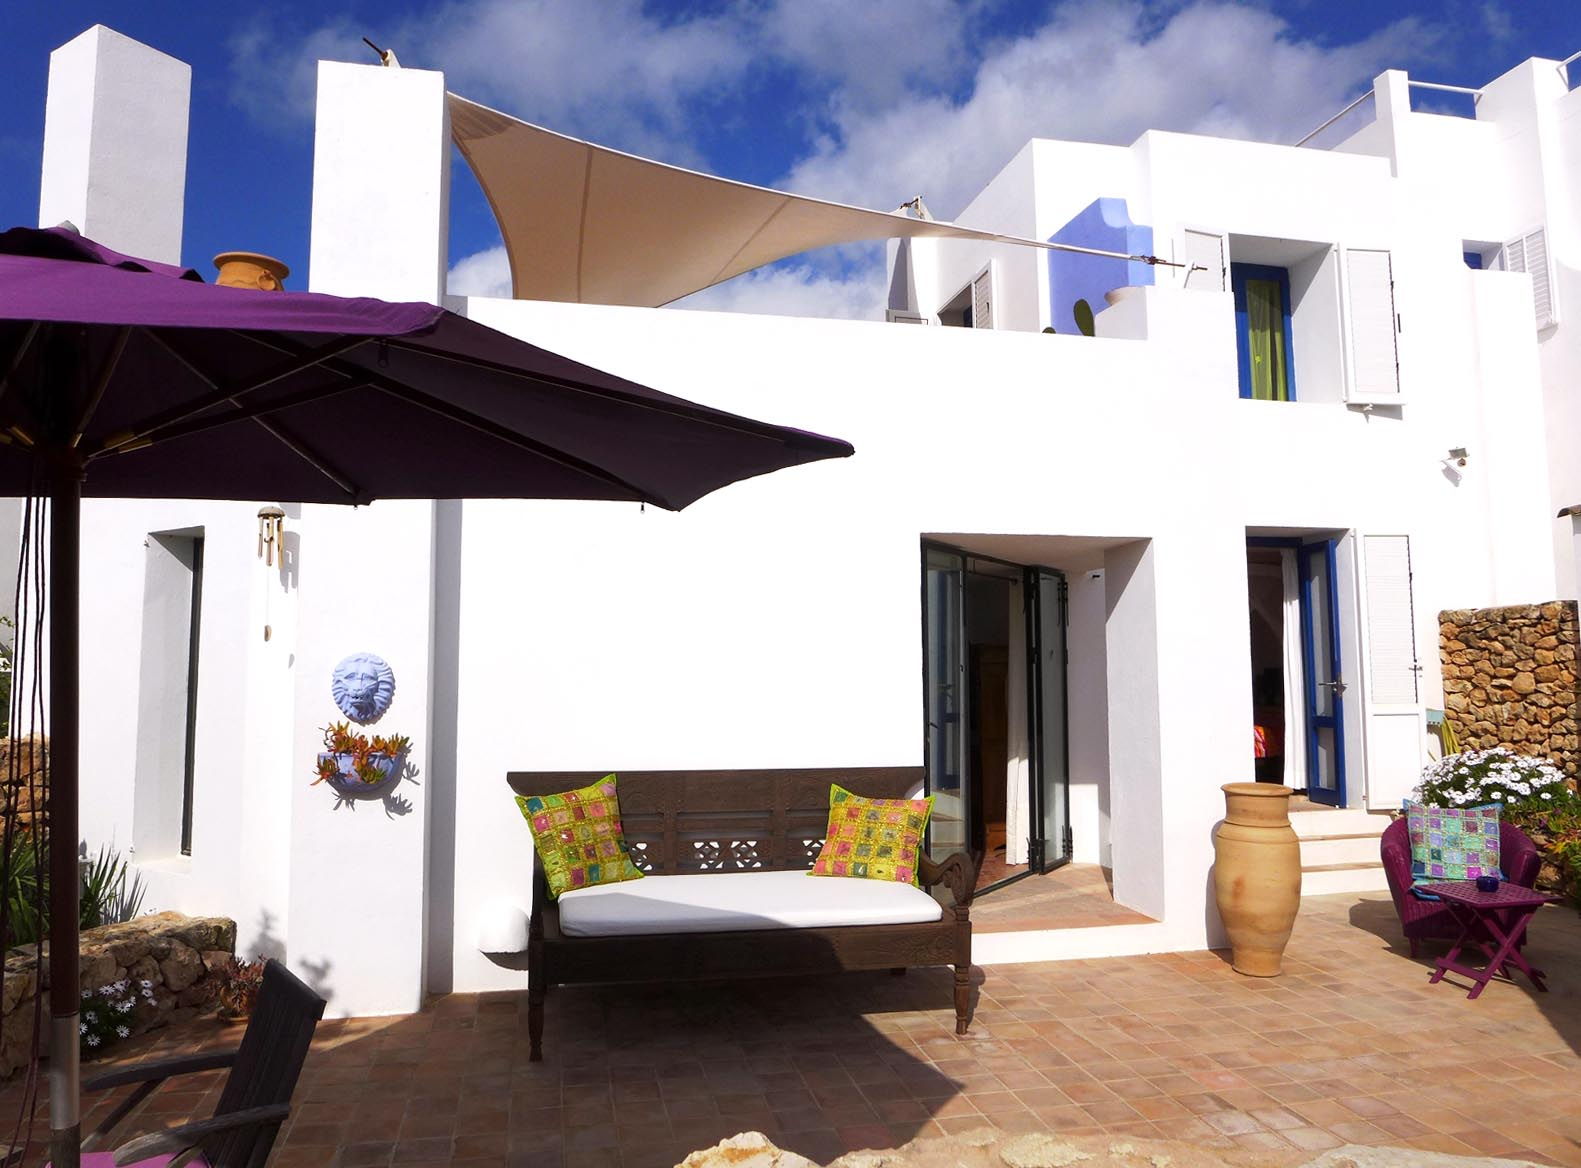 Charming terraced house located on the west coast of the island